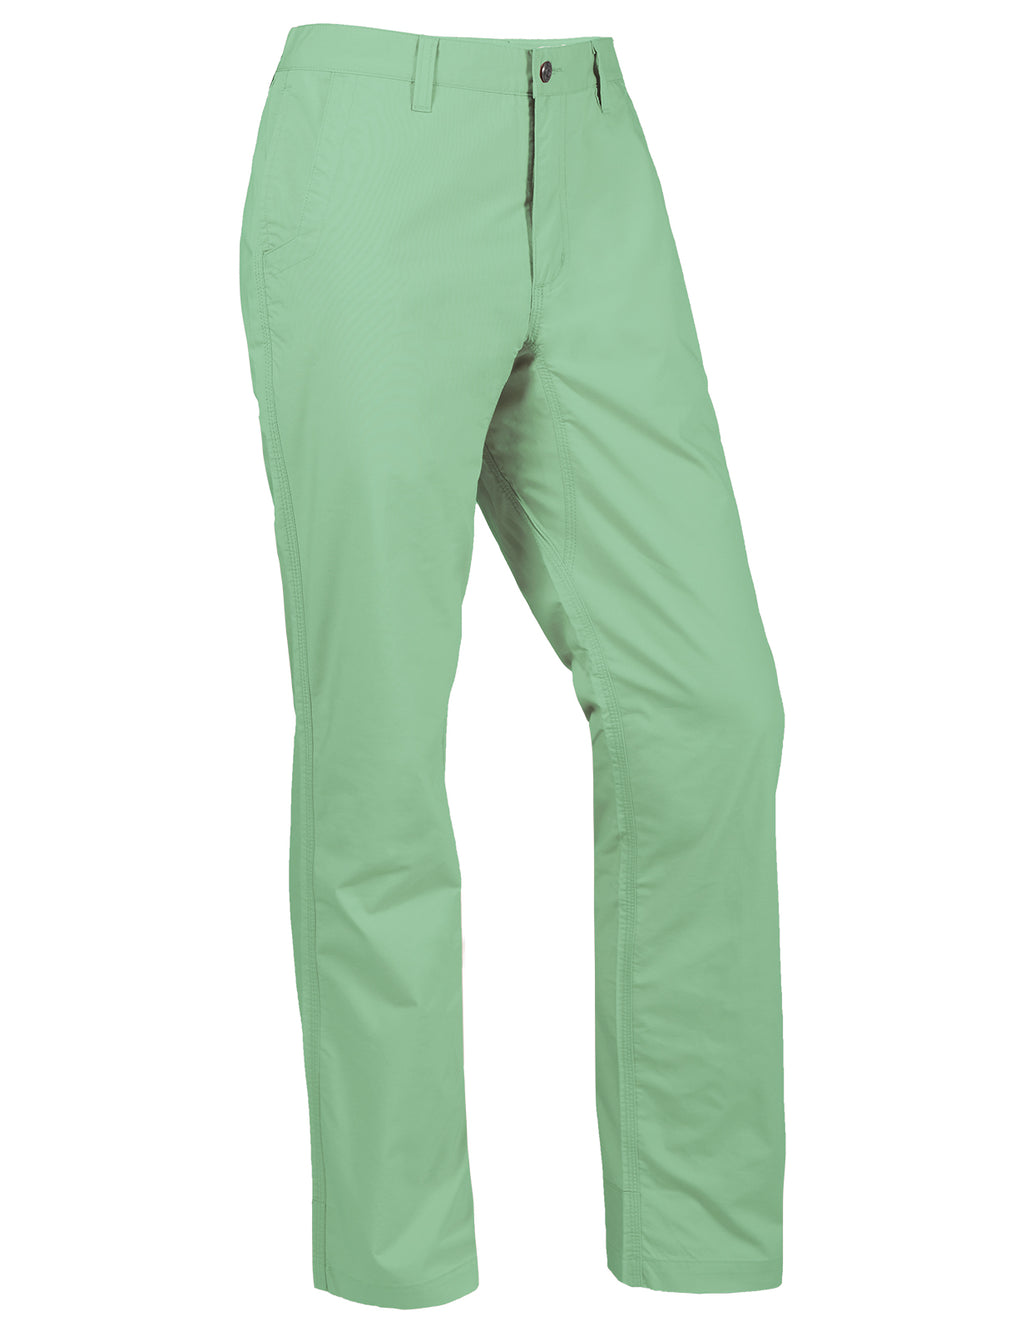 Men's Stretch Poplin Pant | Slim Fit / Oregano